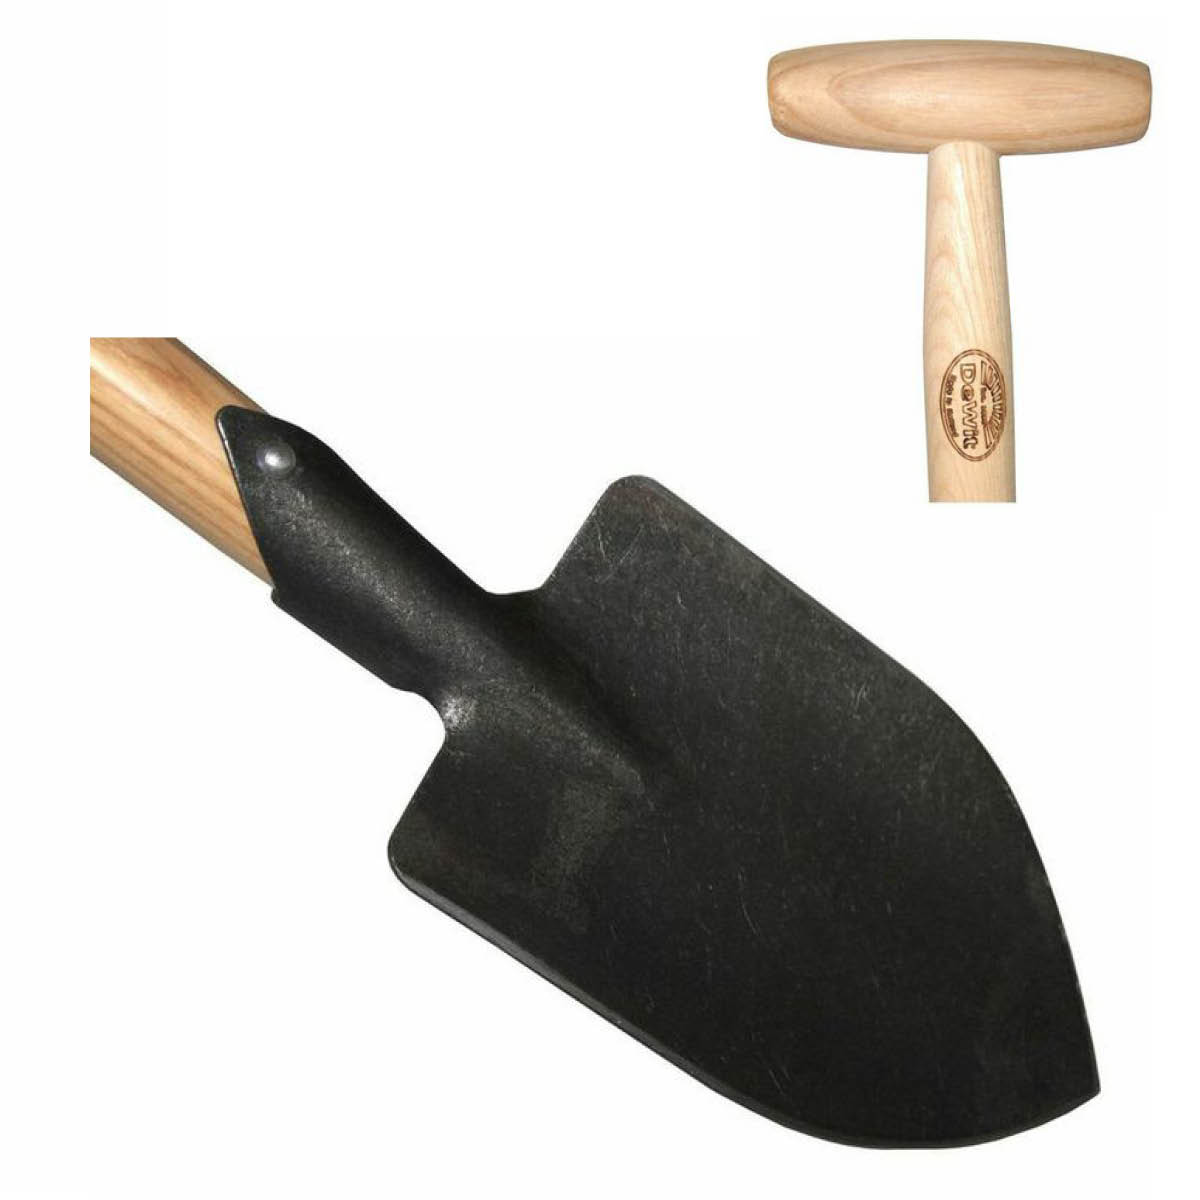 31-3172 Tierra Garden DeWit Junior Pointed Spade